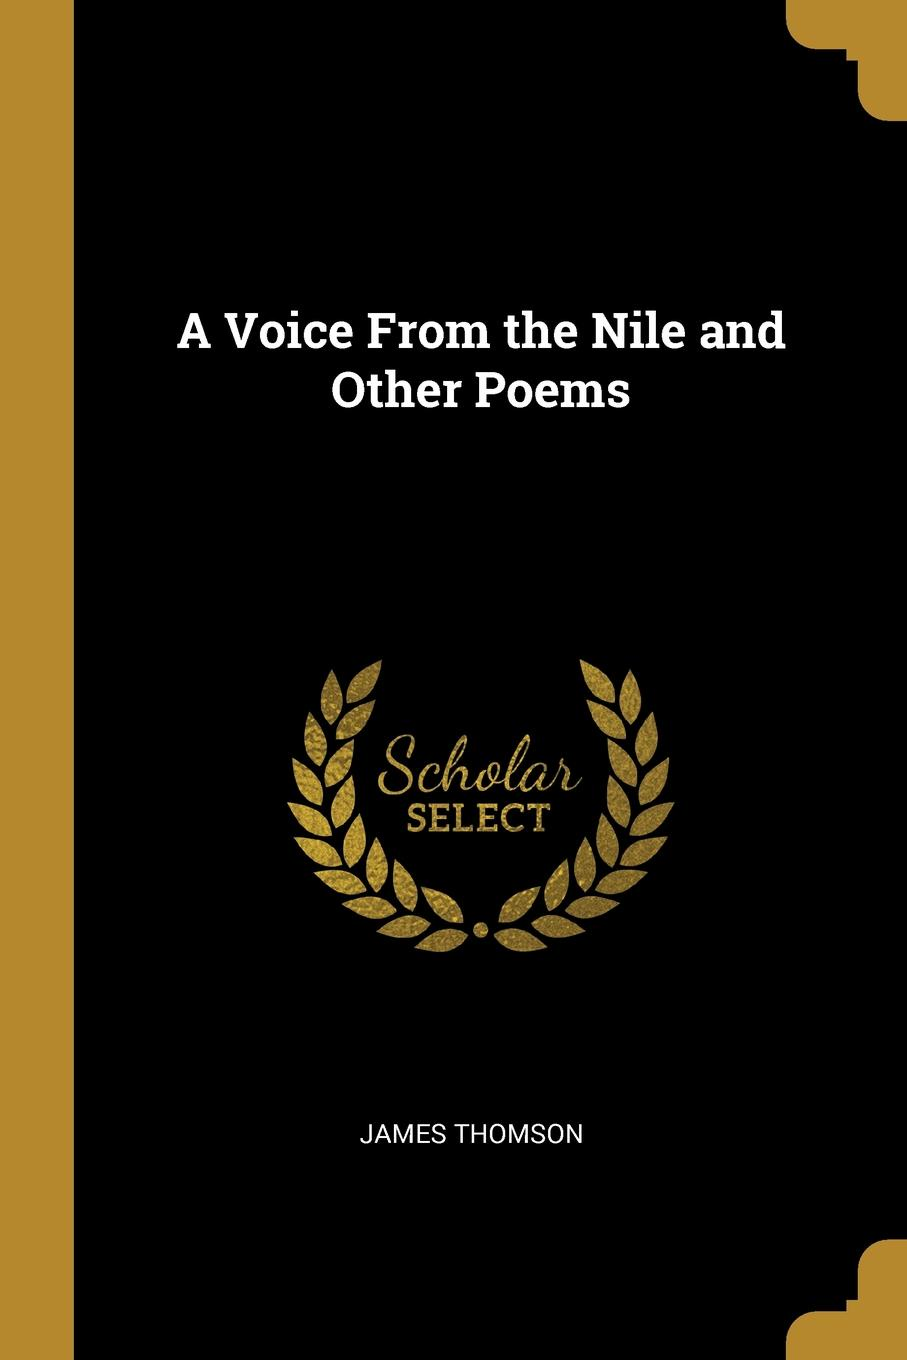 James Thomson A Voice From the Nile and Other Poems thomson james a voice from the nile and other poems